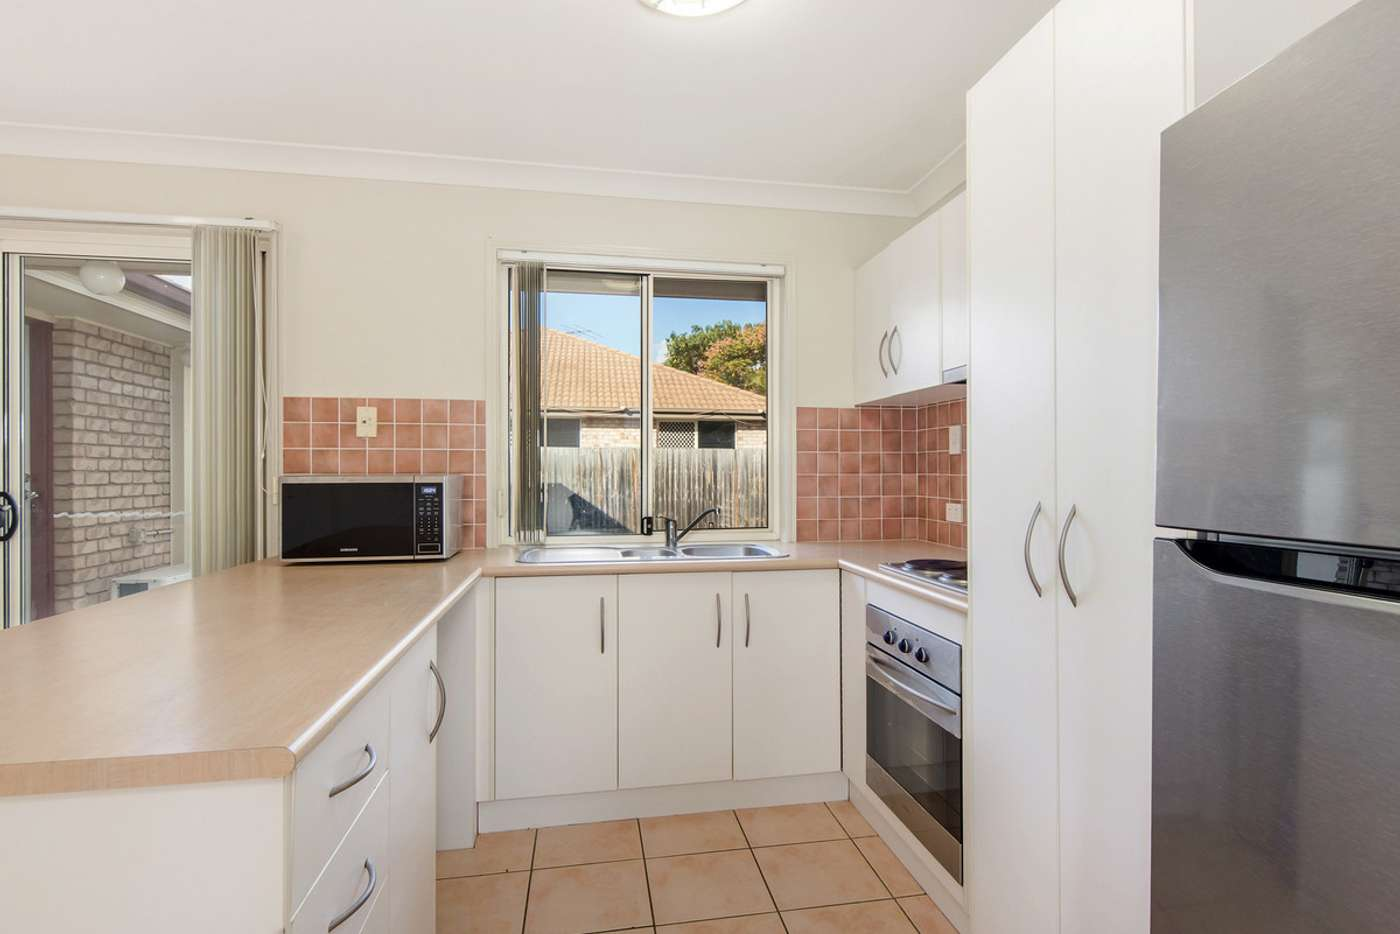 Sixth view of Homely house listing, 11 Kristy Court, Raceview QLD 4305